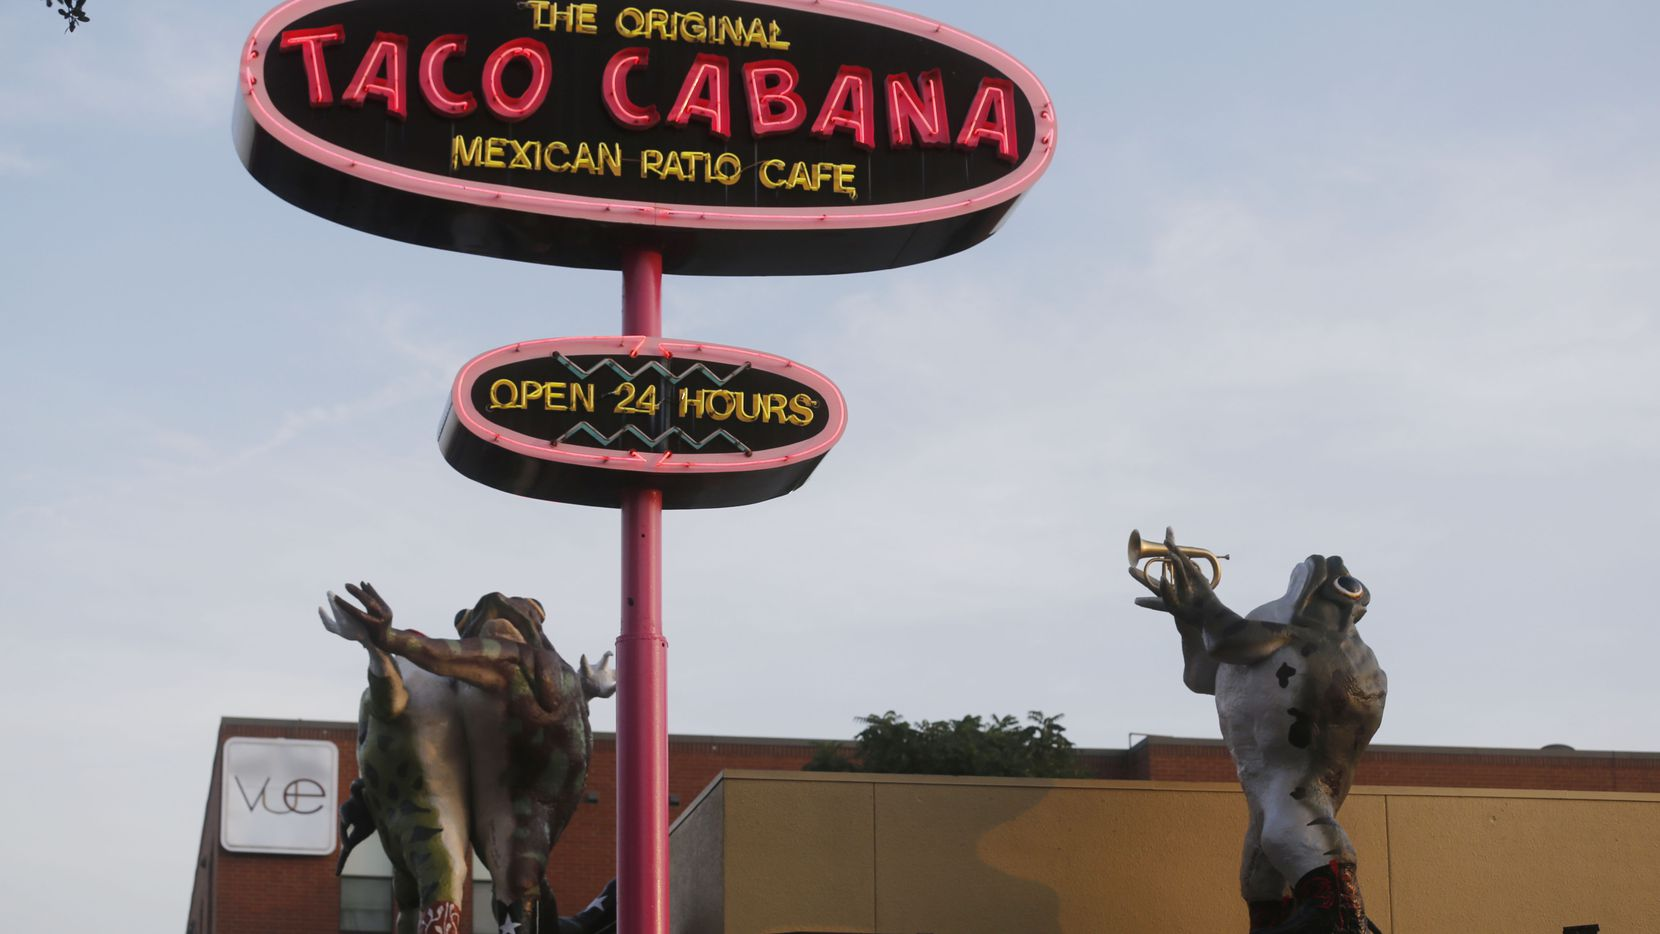 Three of the original Six Frogs Over Tango sculptures on top of the Taco Cabana in Lower Greenville Avenue in Dallas, Texas on June 28, 2014.